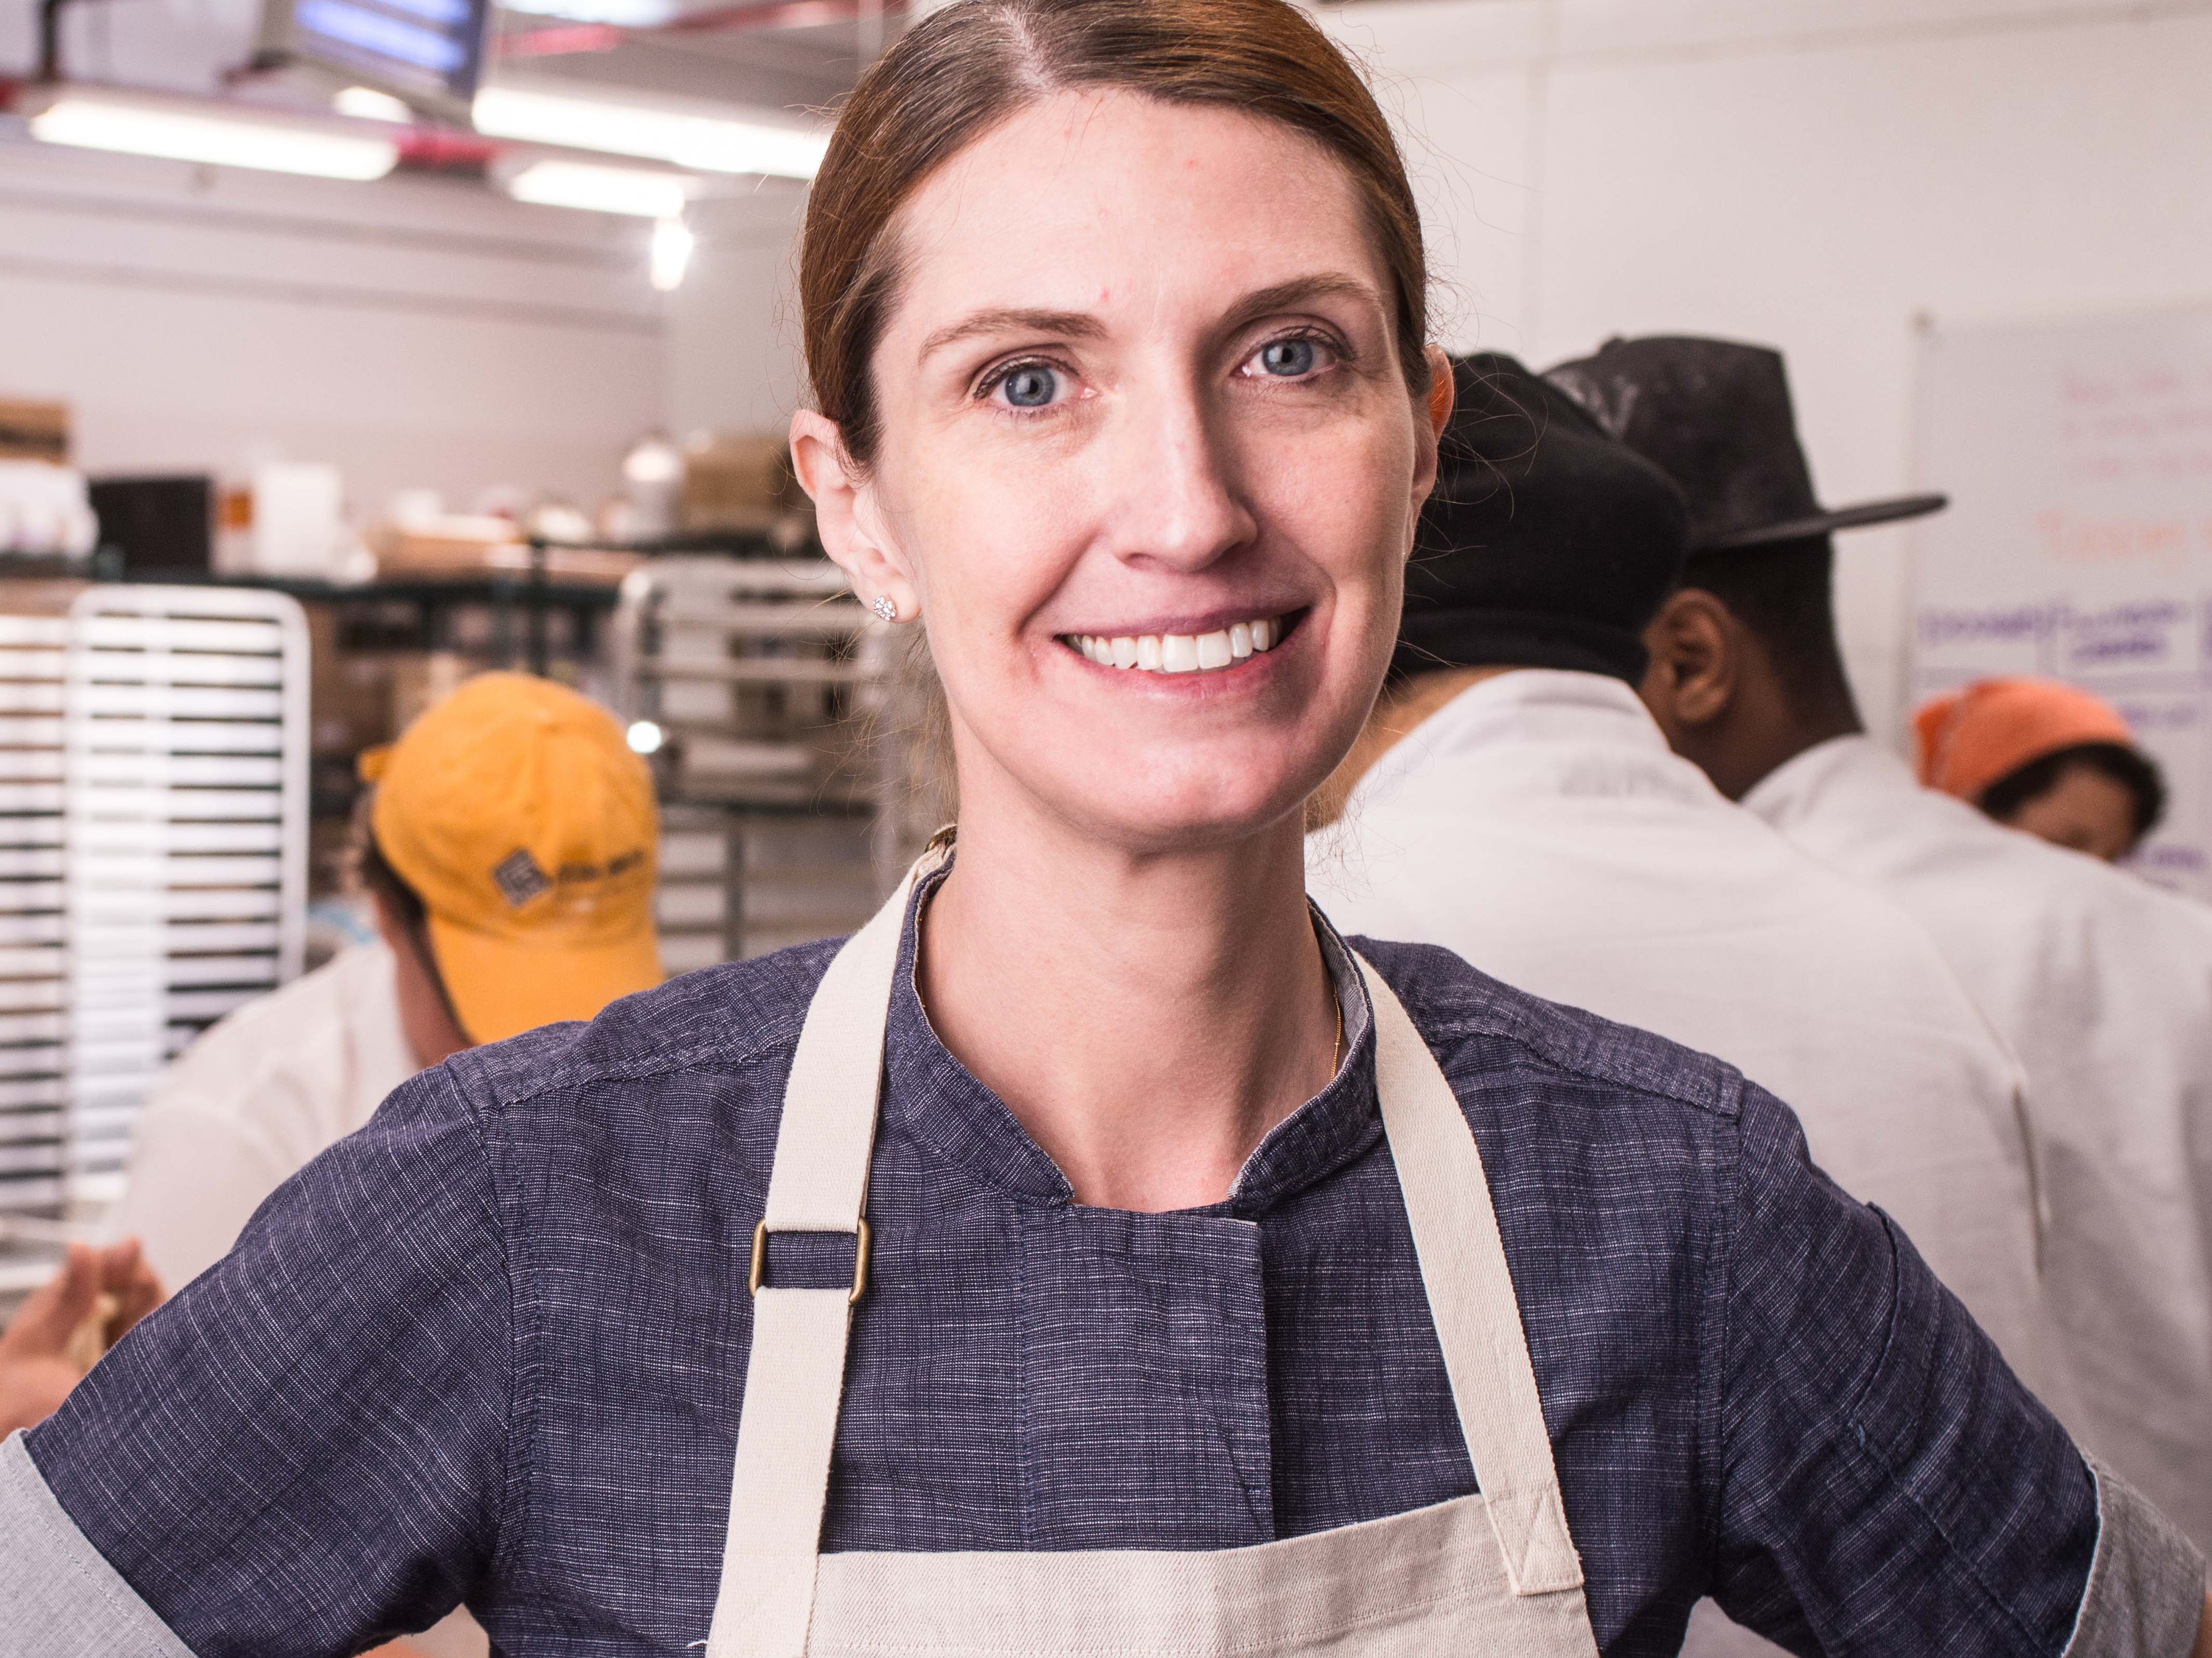 Melissa Weller,  Co-owner and baker at Mario Carbone, Rich Torrisi and Jeff Zalaznick's Sadelle's